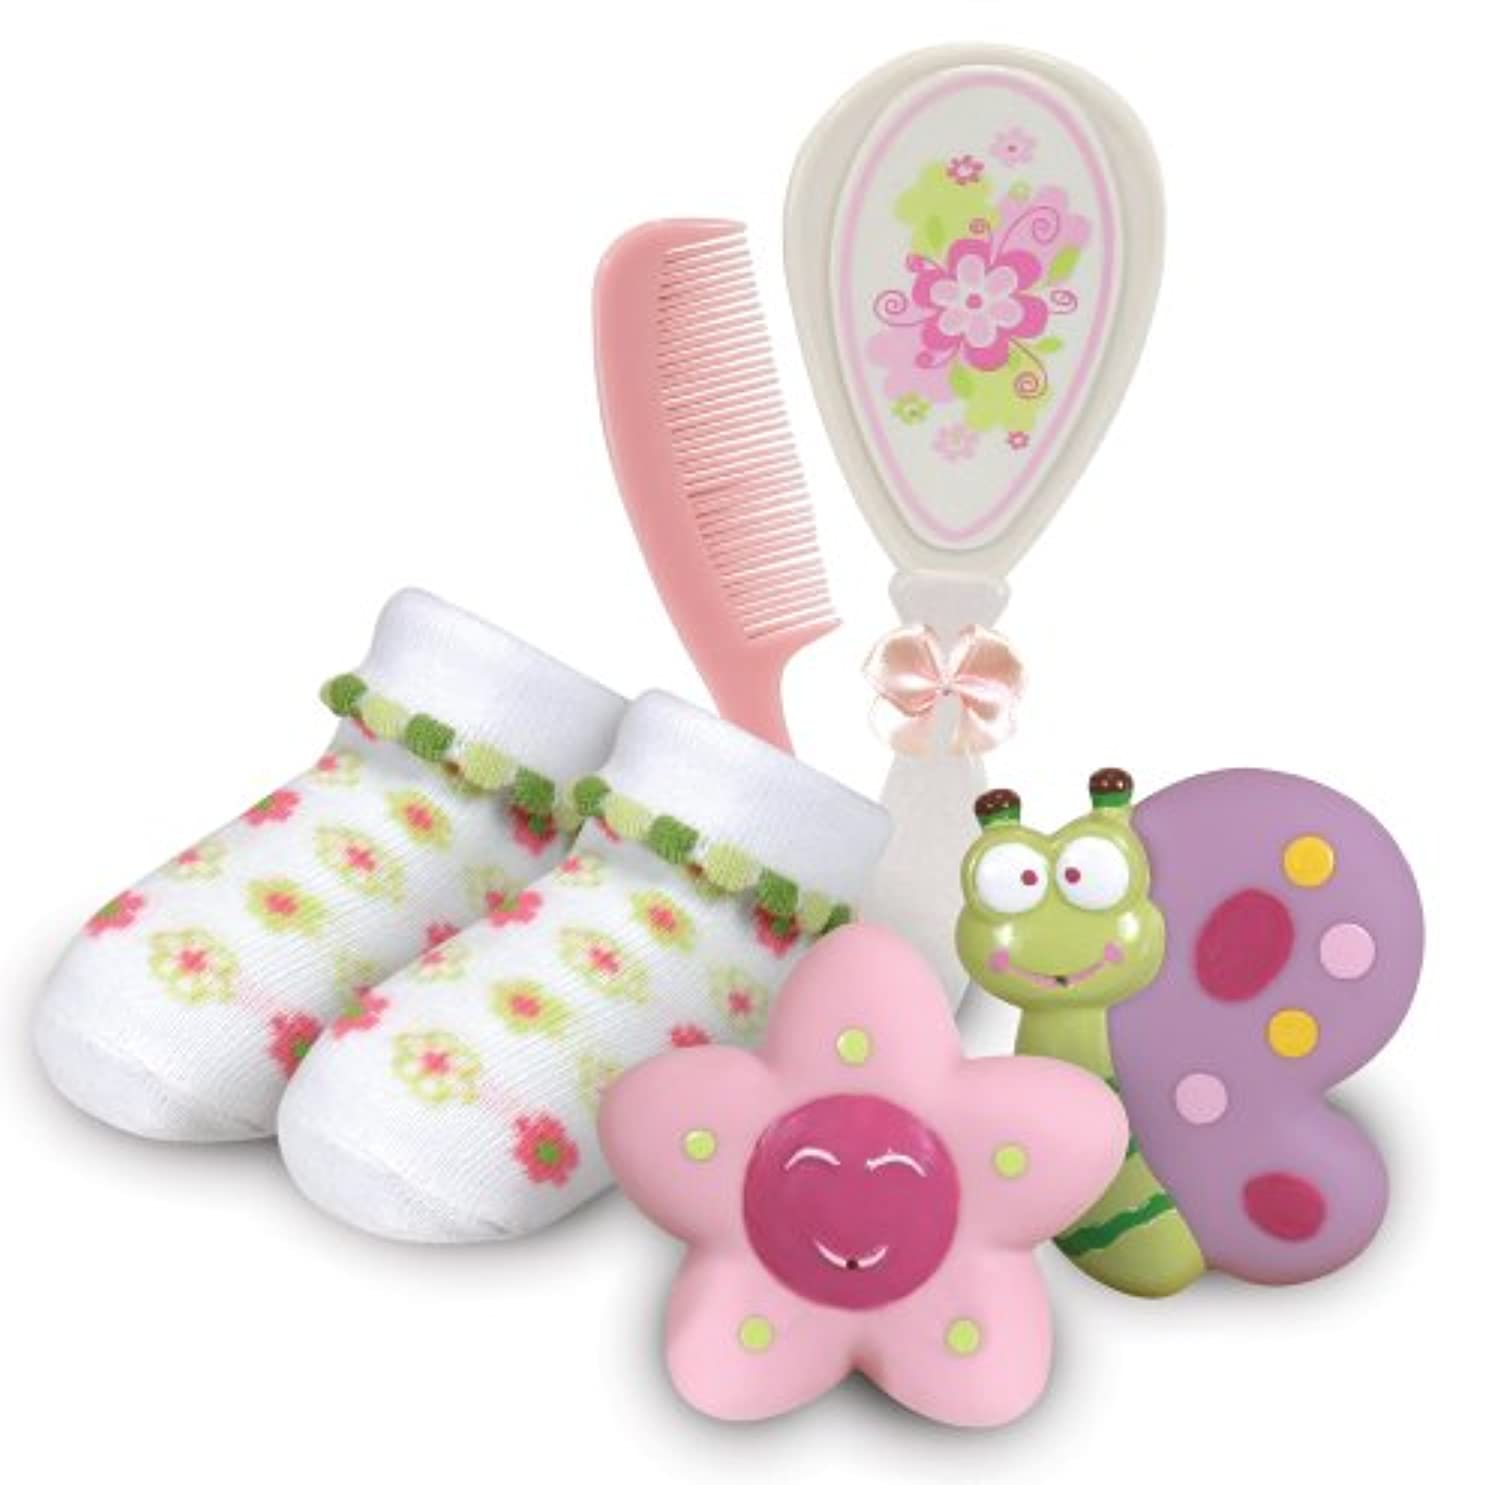 Stephan Baby Bath Squirters, Bootie Socks and Brush/Comb Gift Set, Swirly Flower by Stephan Baby